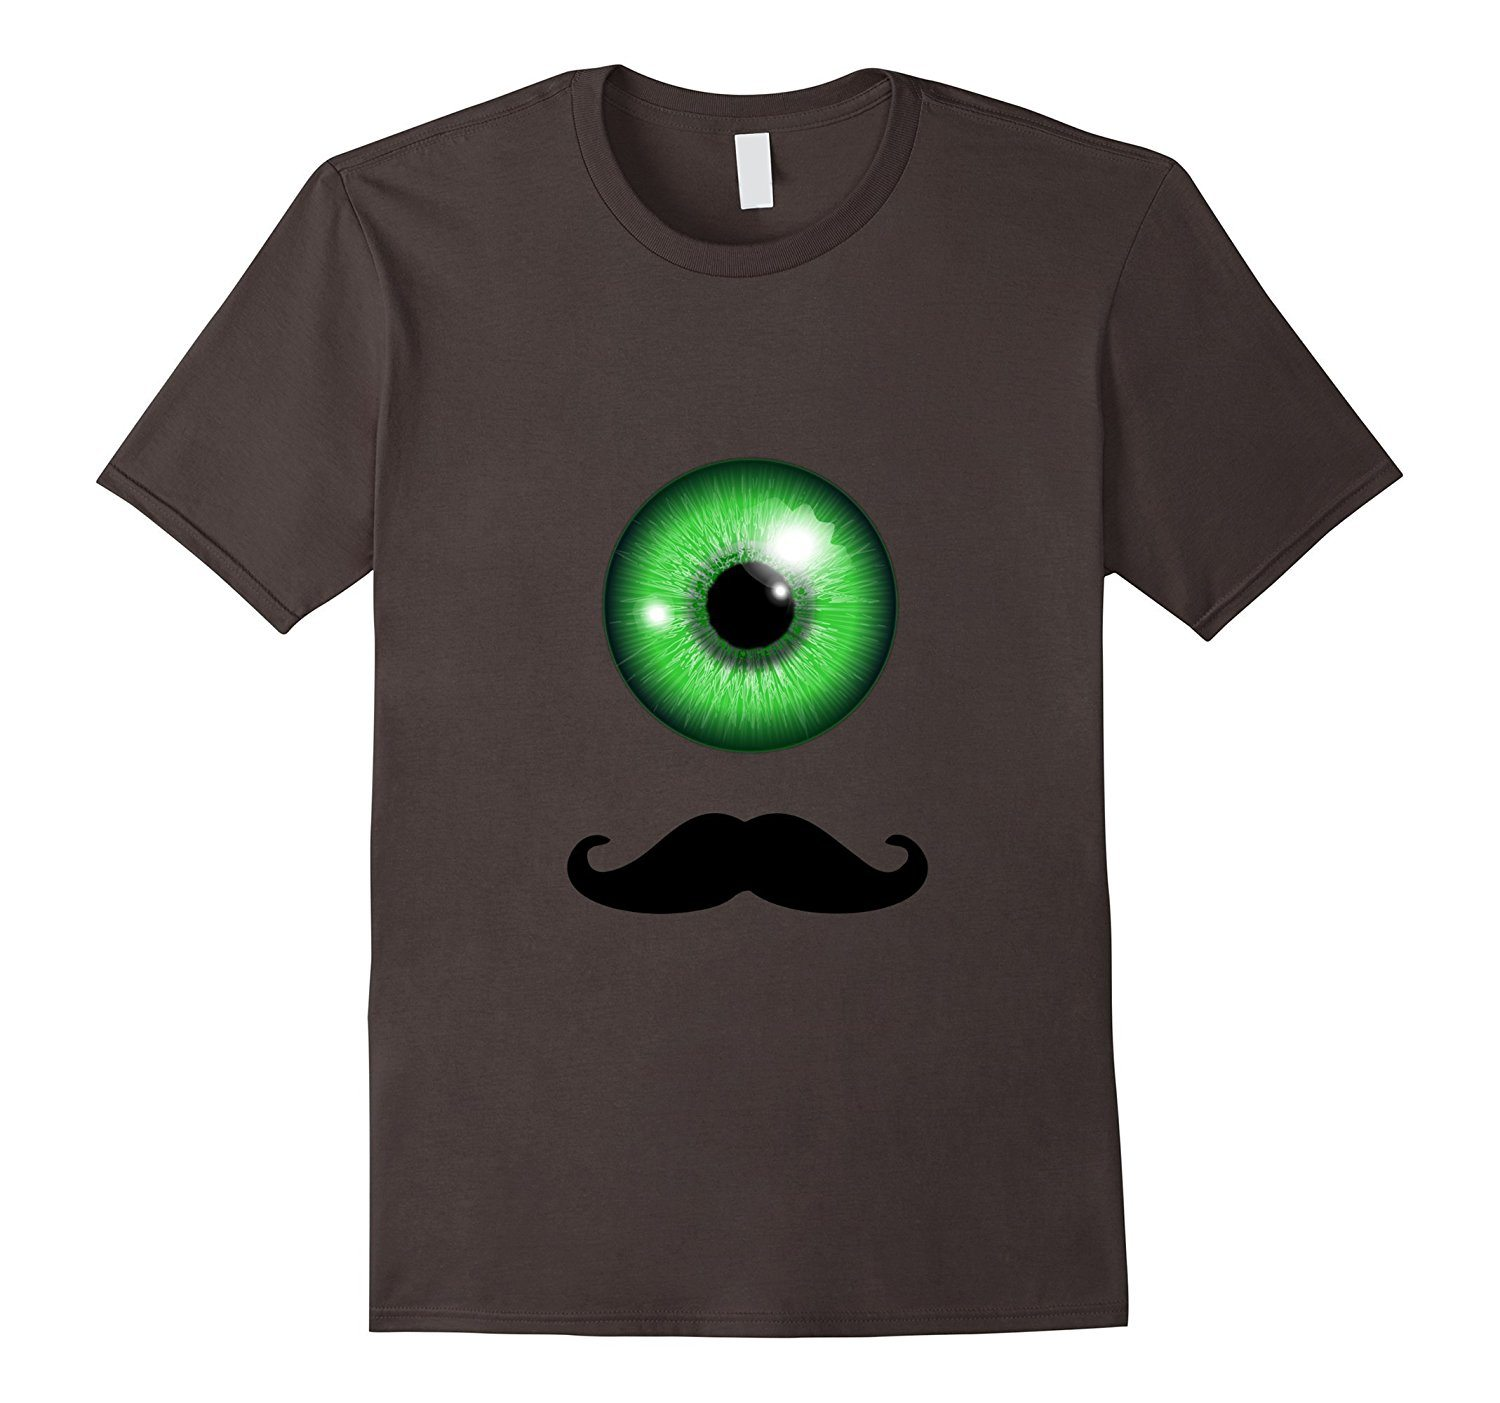 Big Green Eye with Mustache Graphic